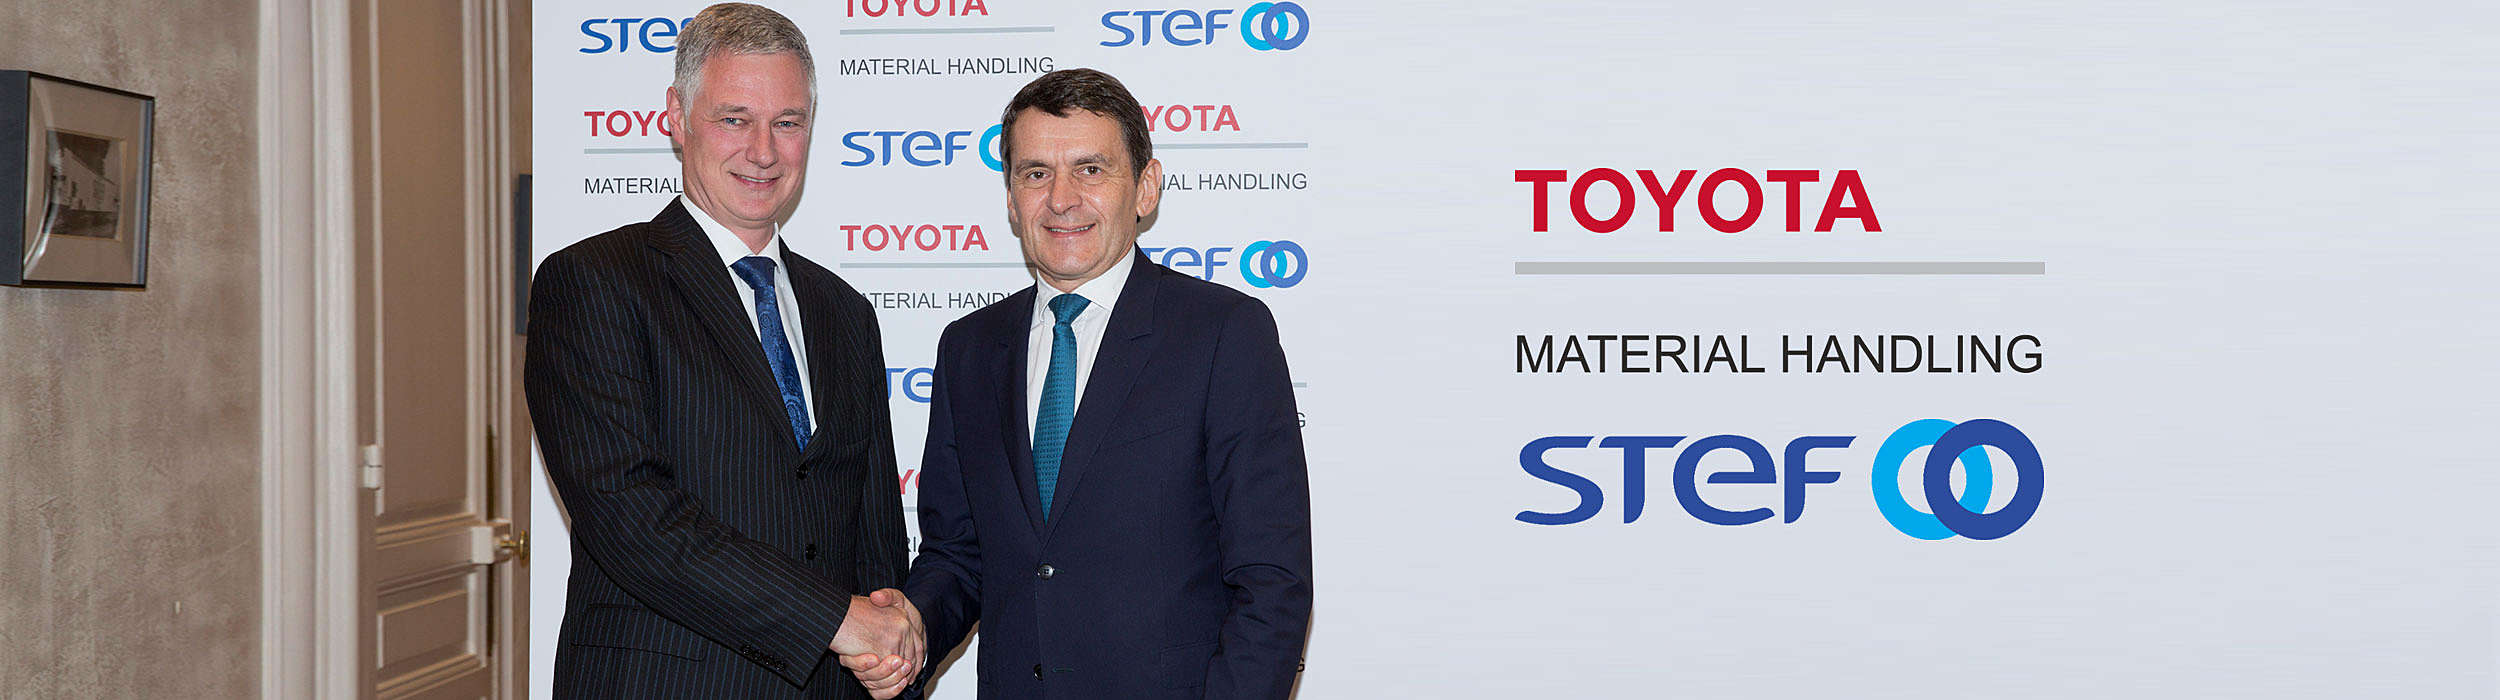 Matthias Fischer, president of Toyota Material Handling Europe and Jean-Pierre Sancier, CEO of STEF